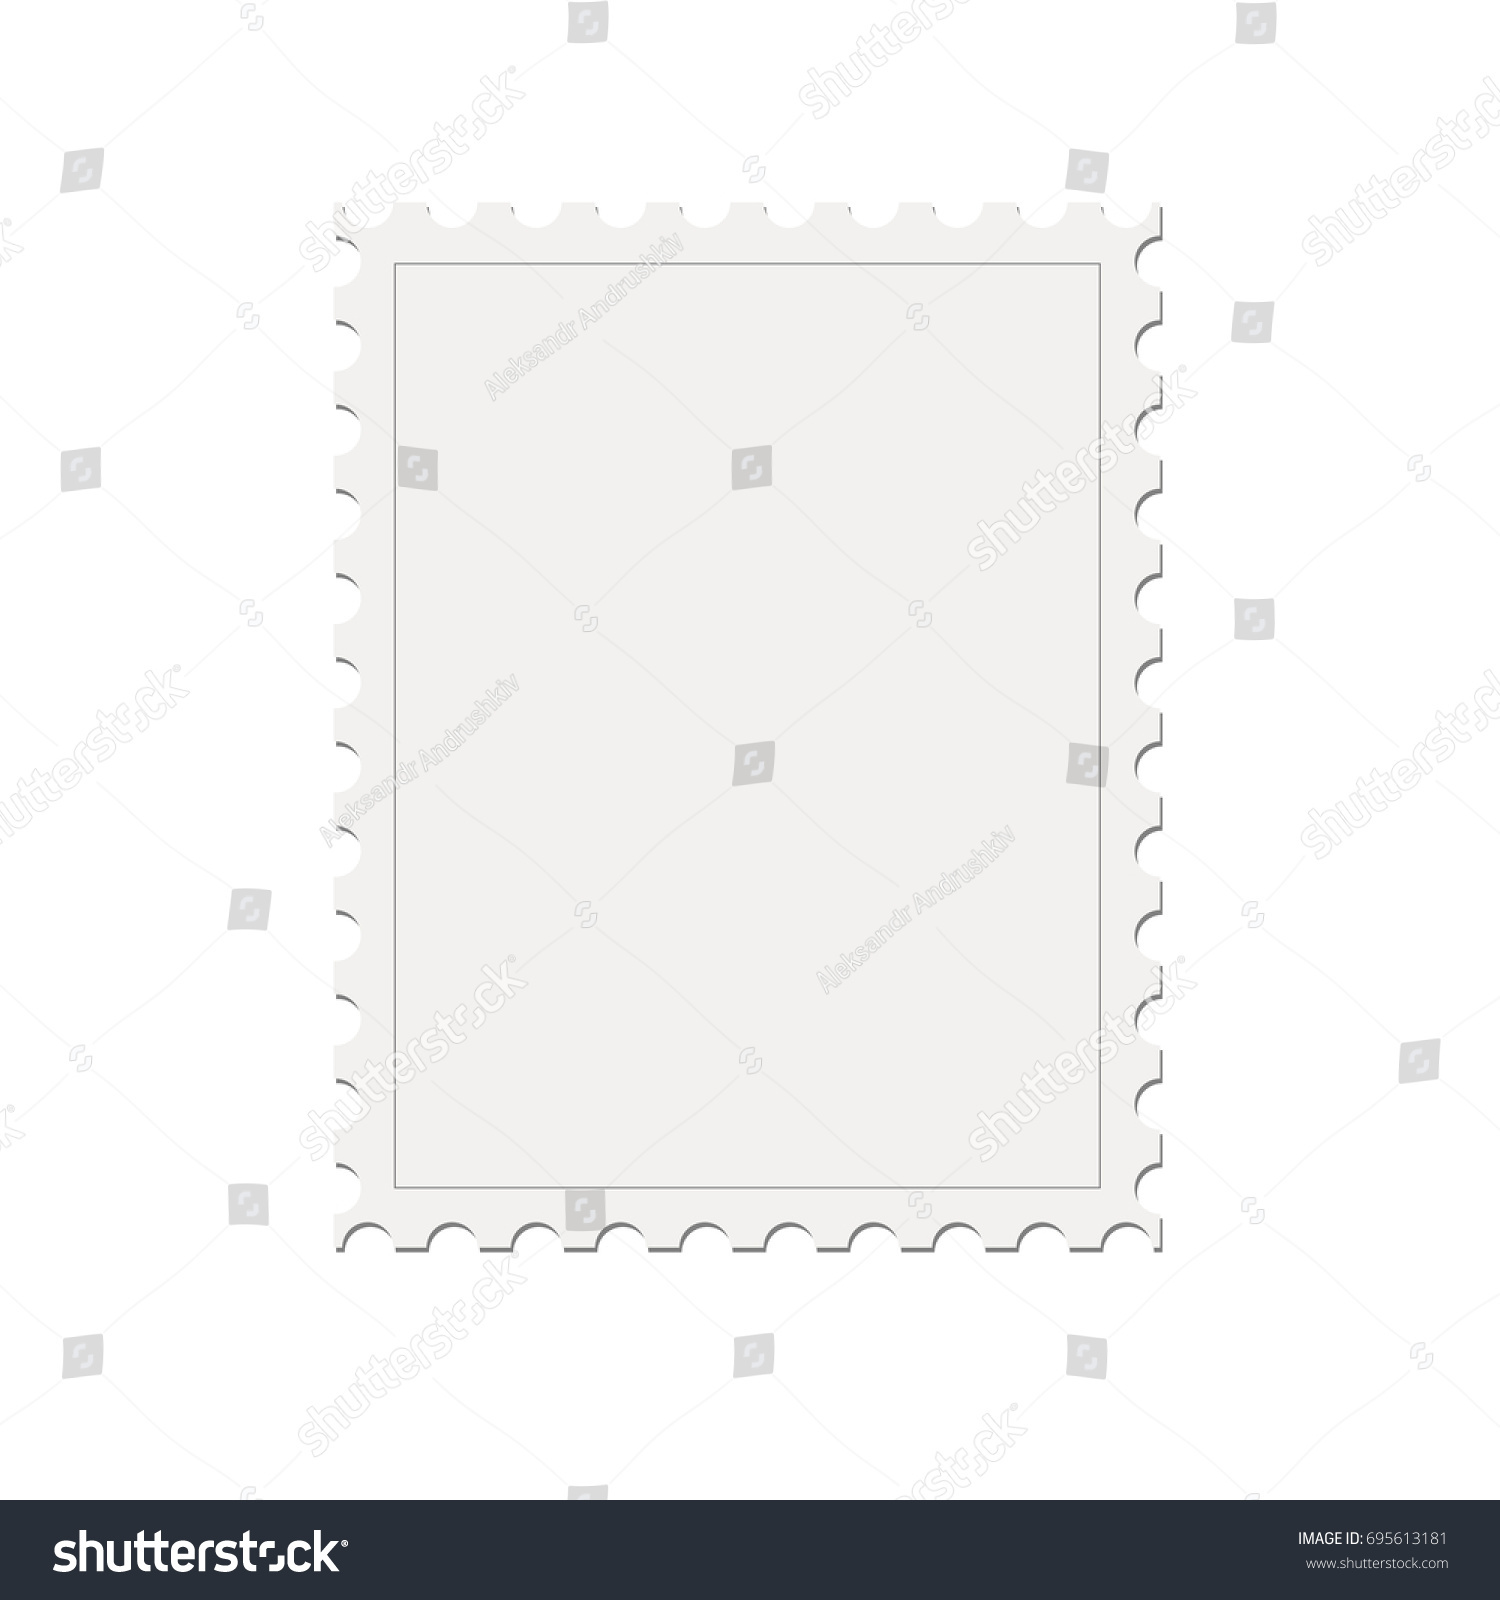 Blank Mock Up Postage Stamp Template Isolated On White Background. Vector  Illustration